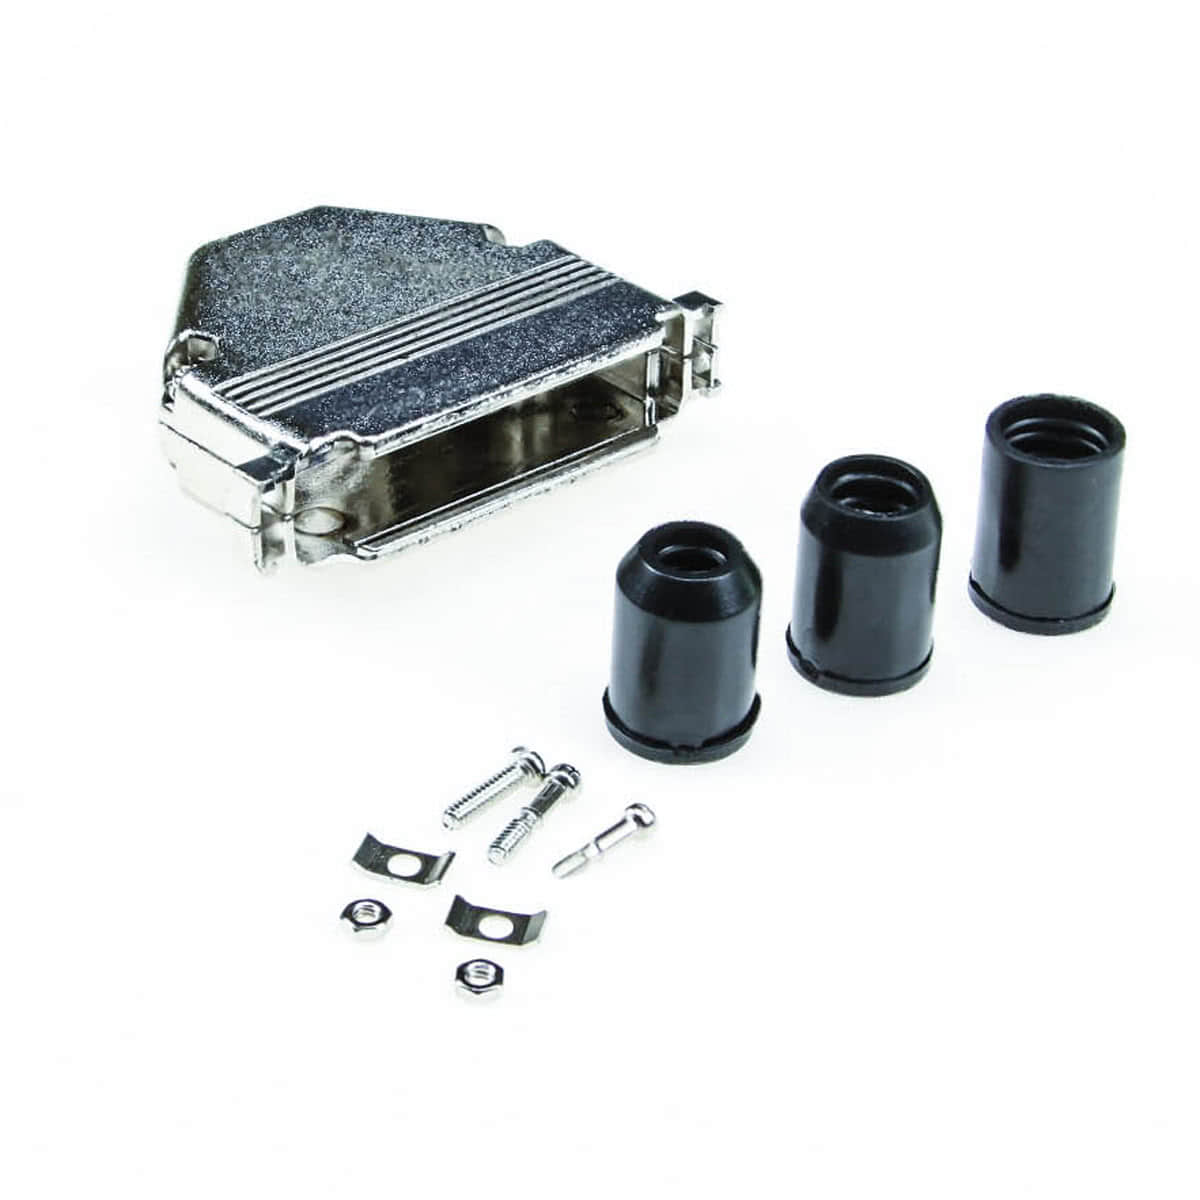 Metal DB37 Cover with Hardware and Gaskets